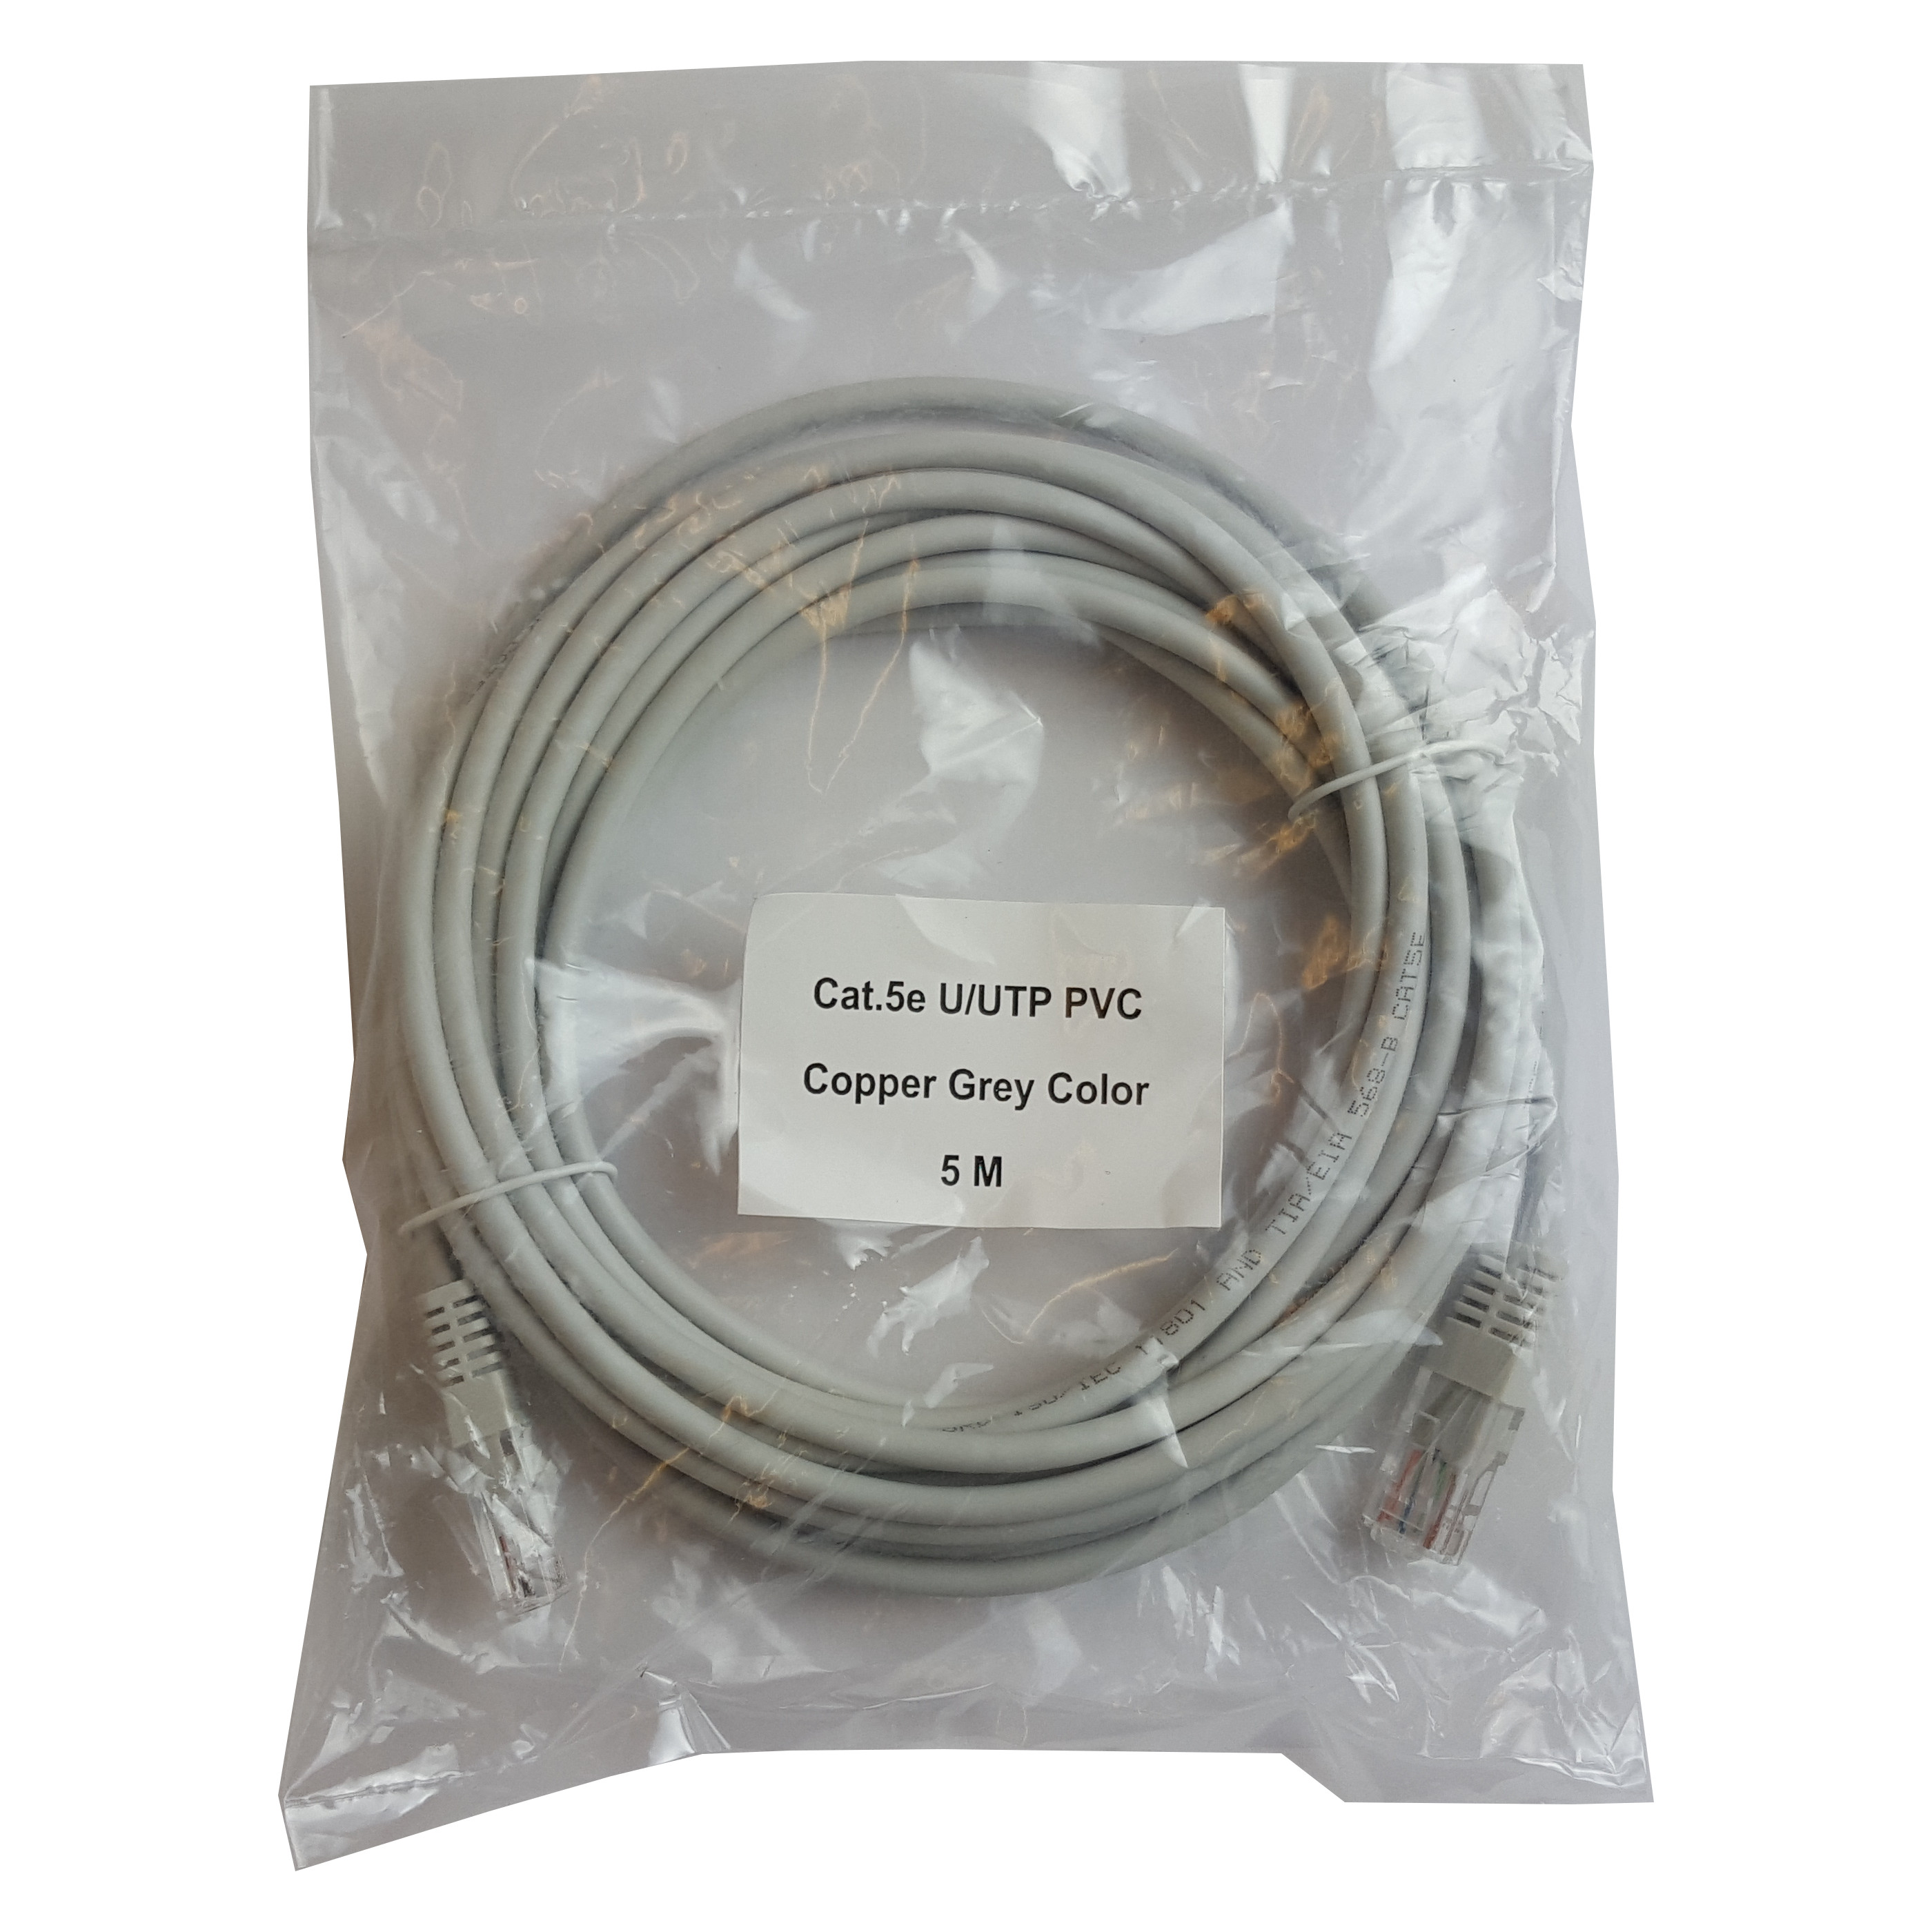 Patch cord UTP CAT5E 5m AWG 26, Cu | NINGBO SHUNSHENG | PATCH5M-UTP